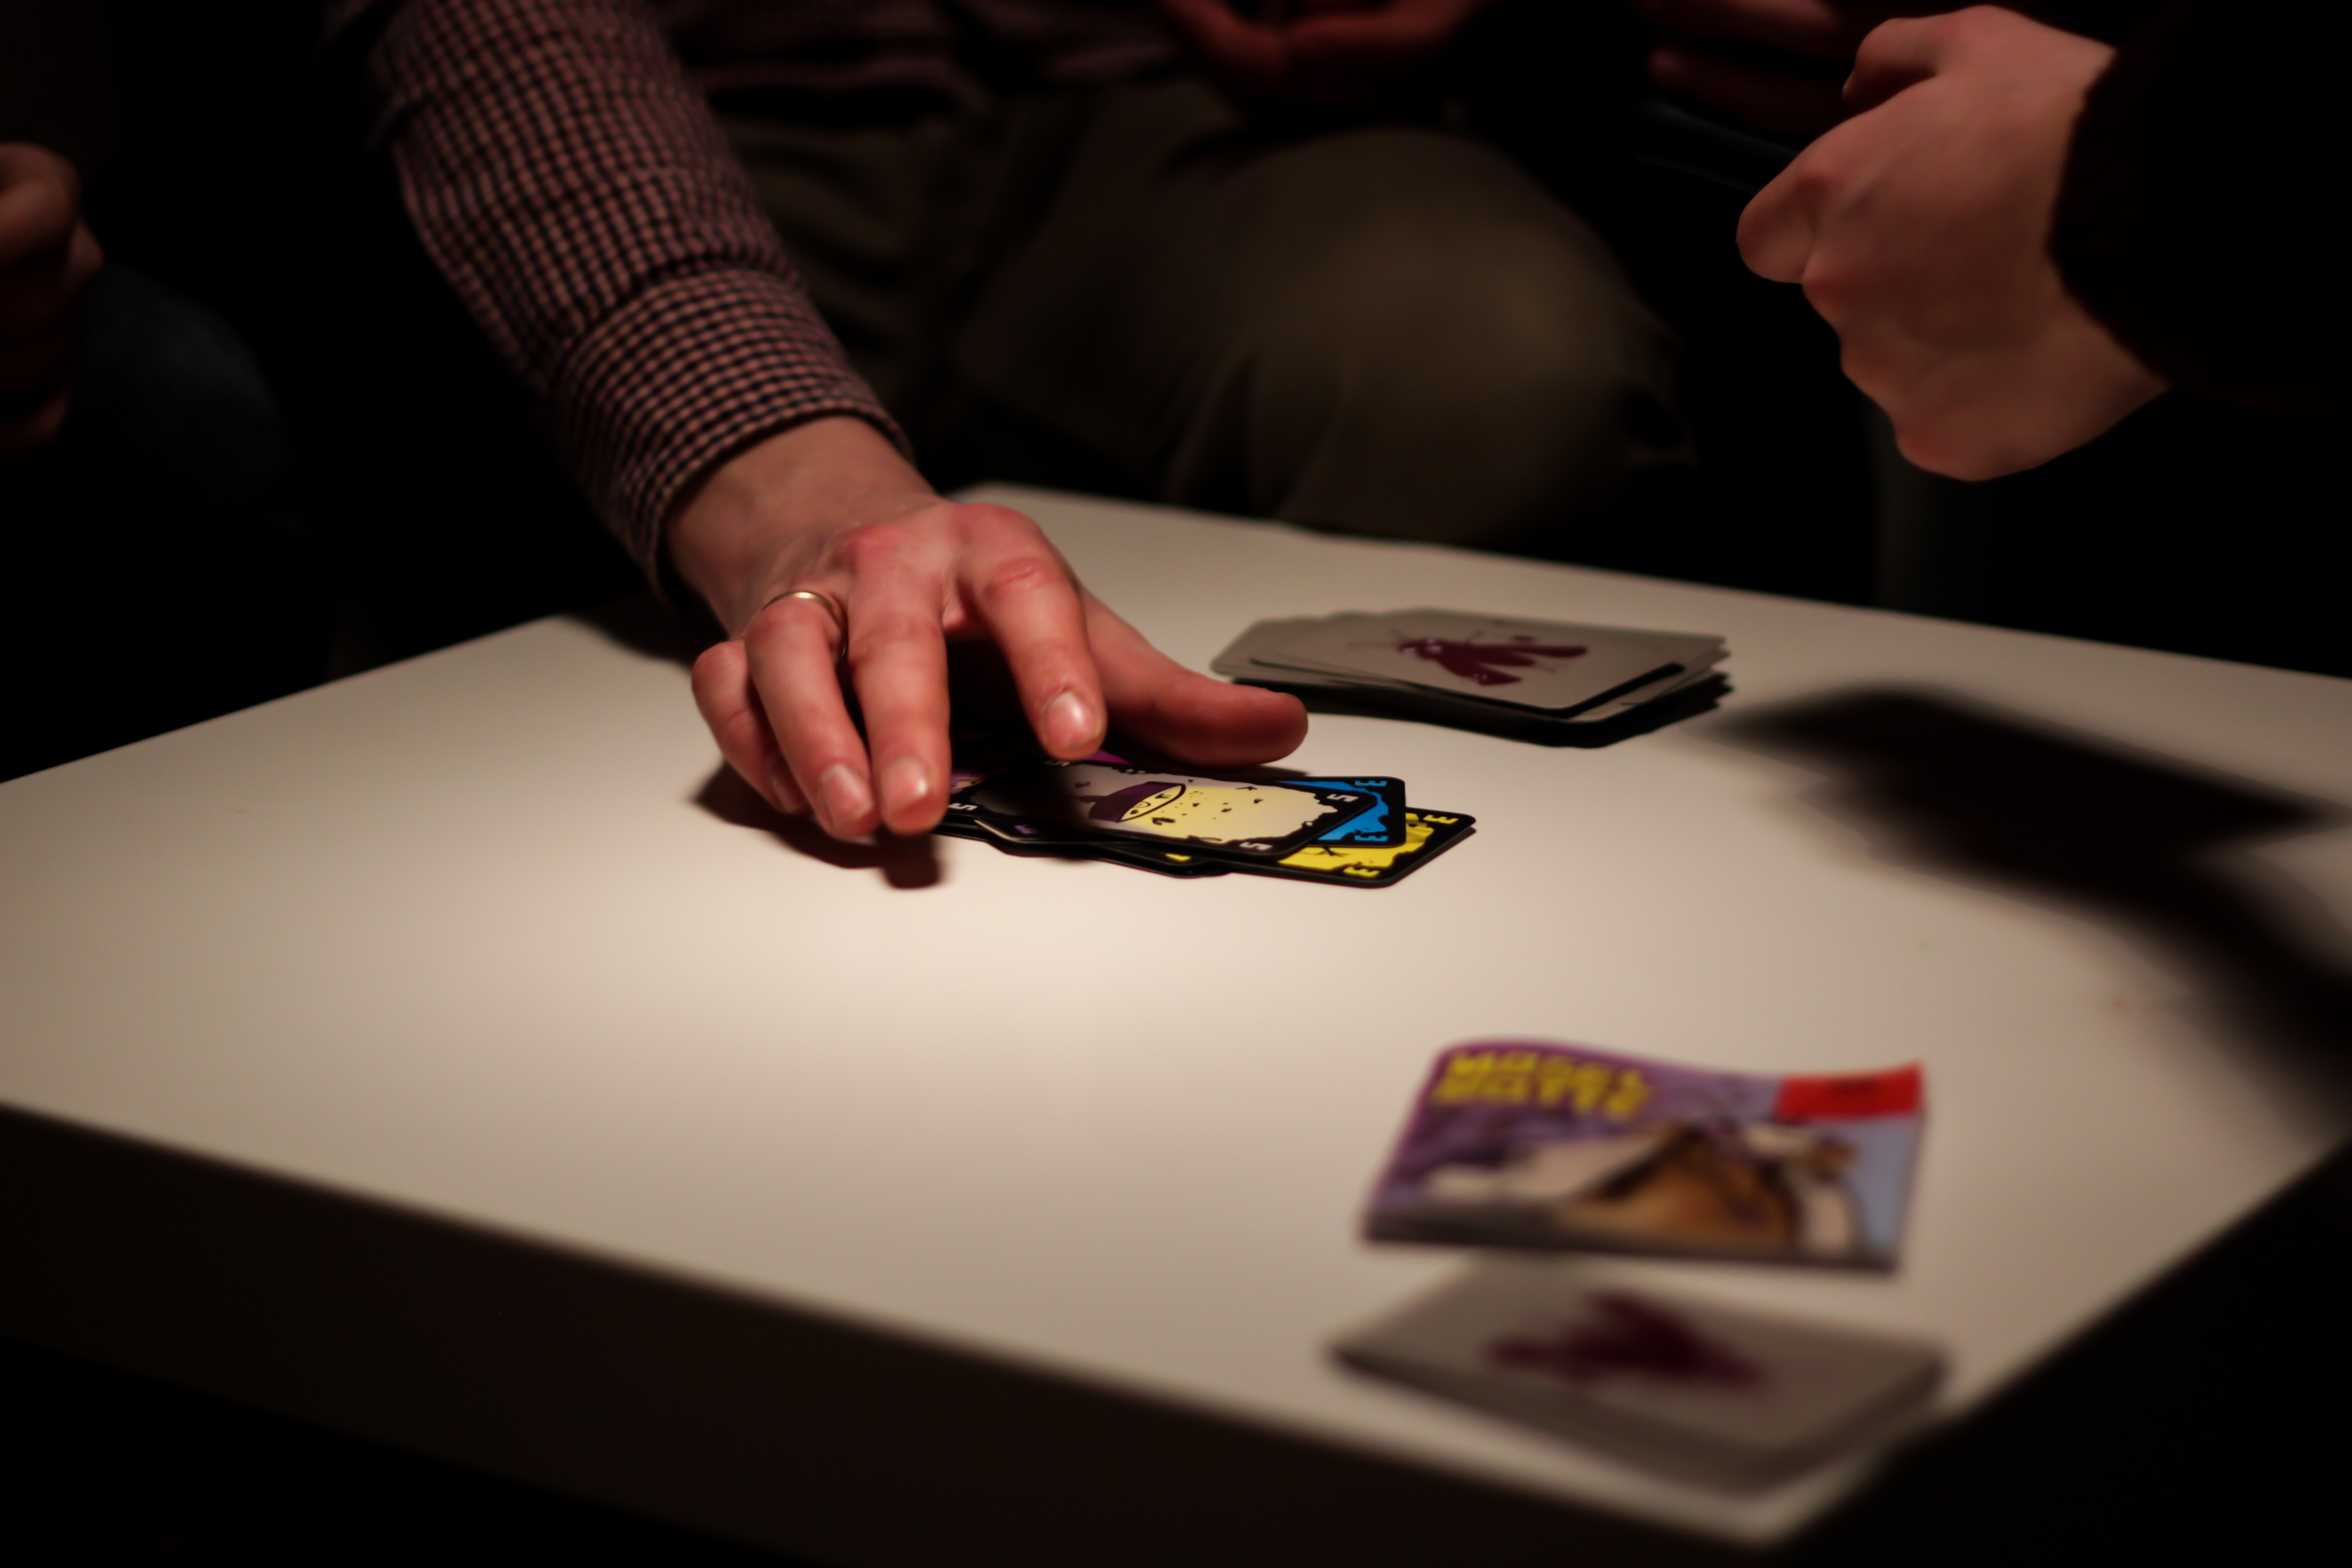 Cheating game dixit photo